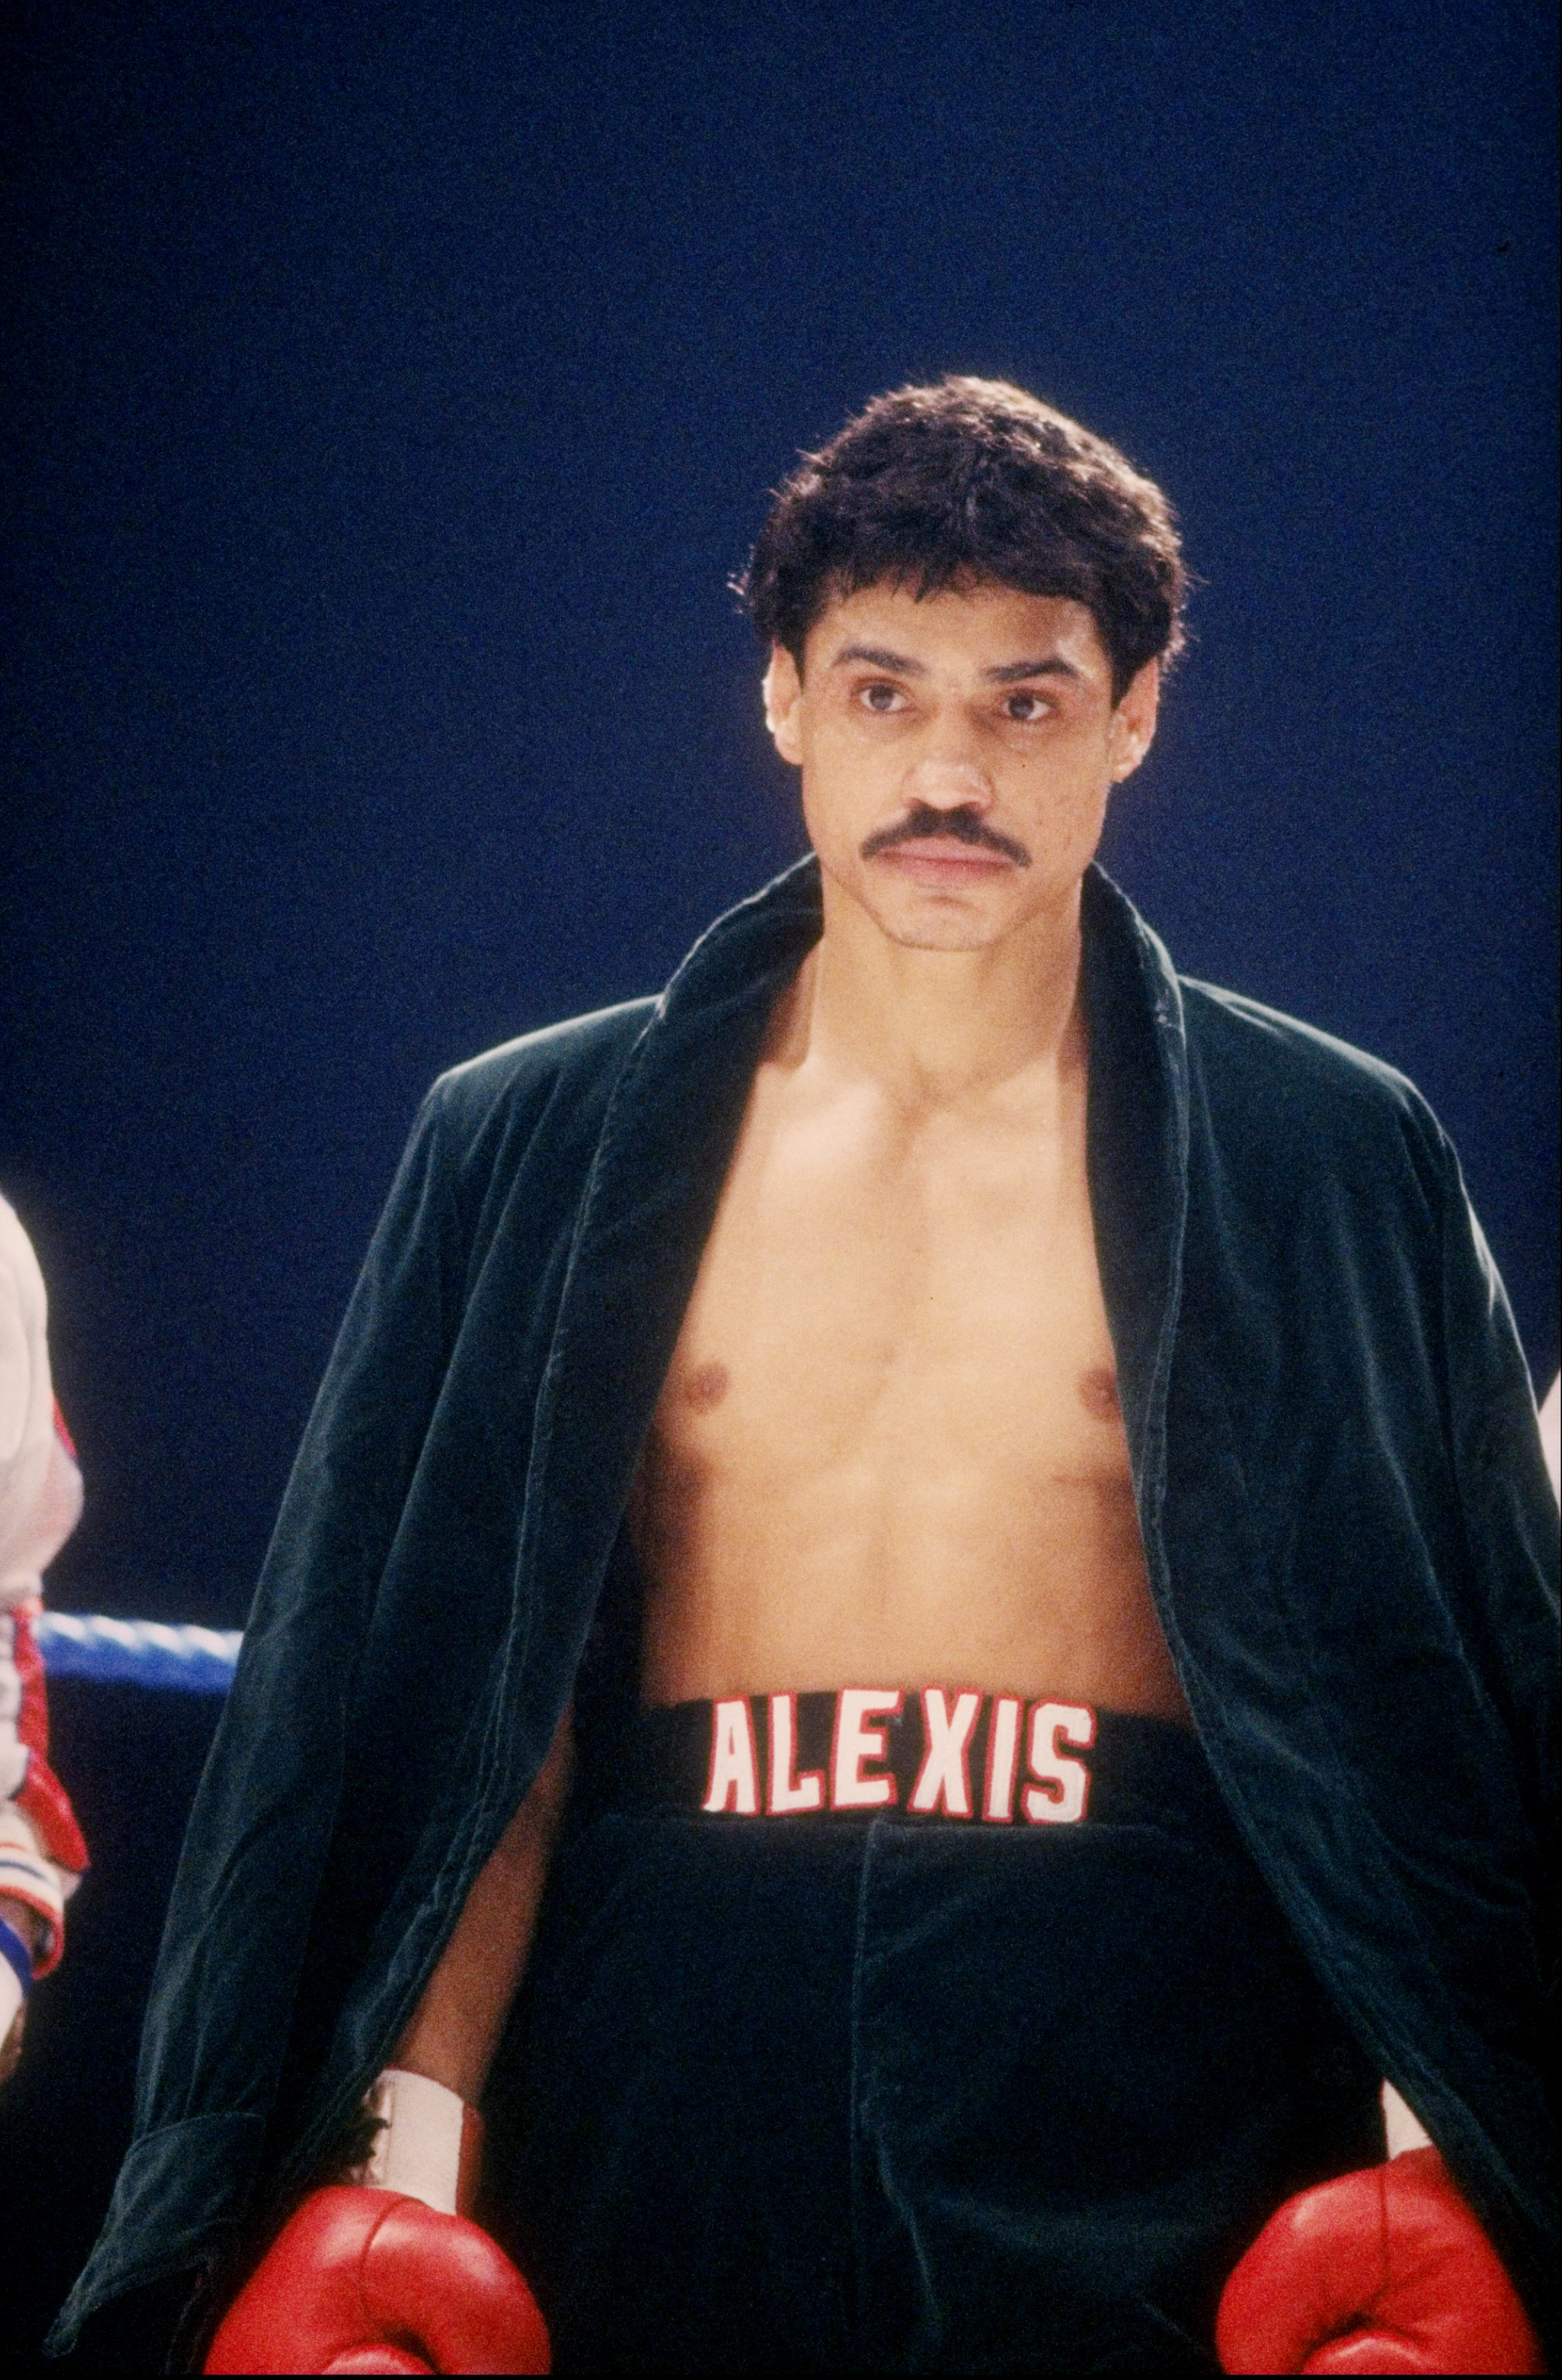 1985-1986: Alexis Arguello looks on during a bout. Mandatory Credit: Allsport /Allsport